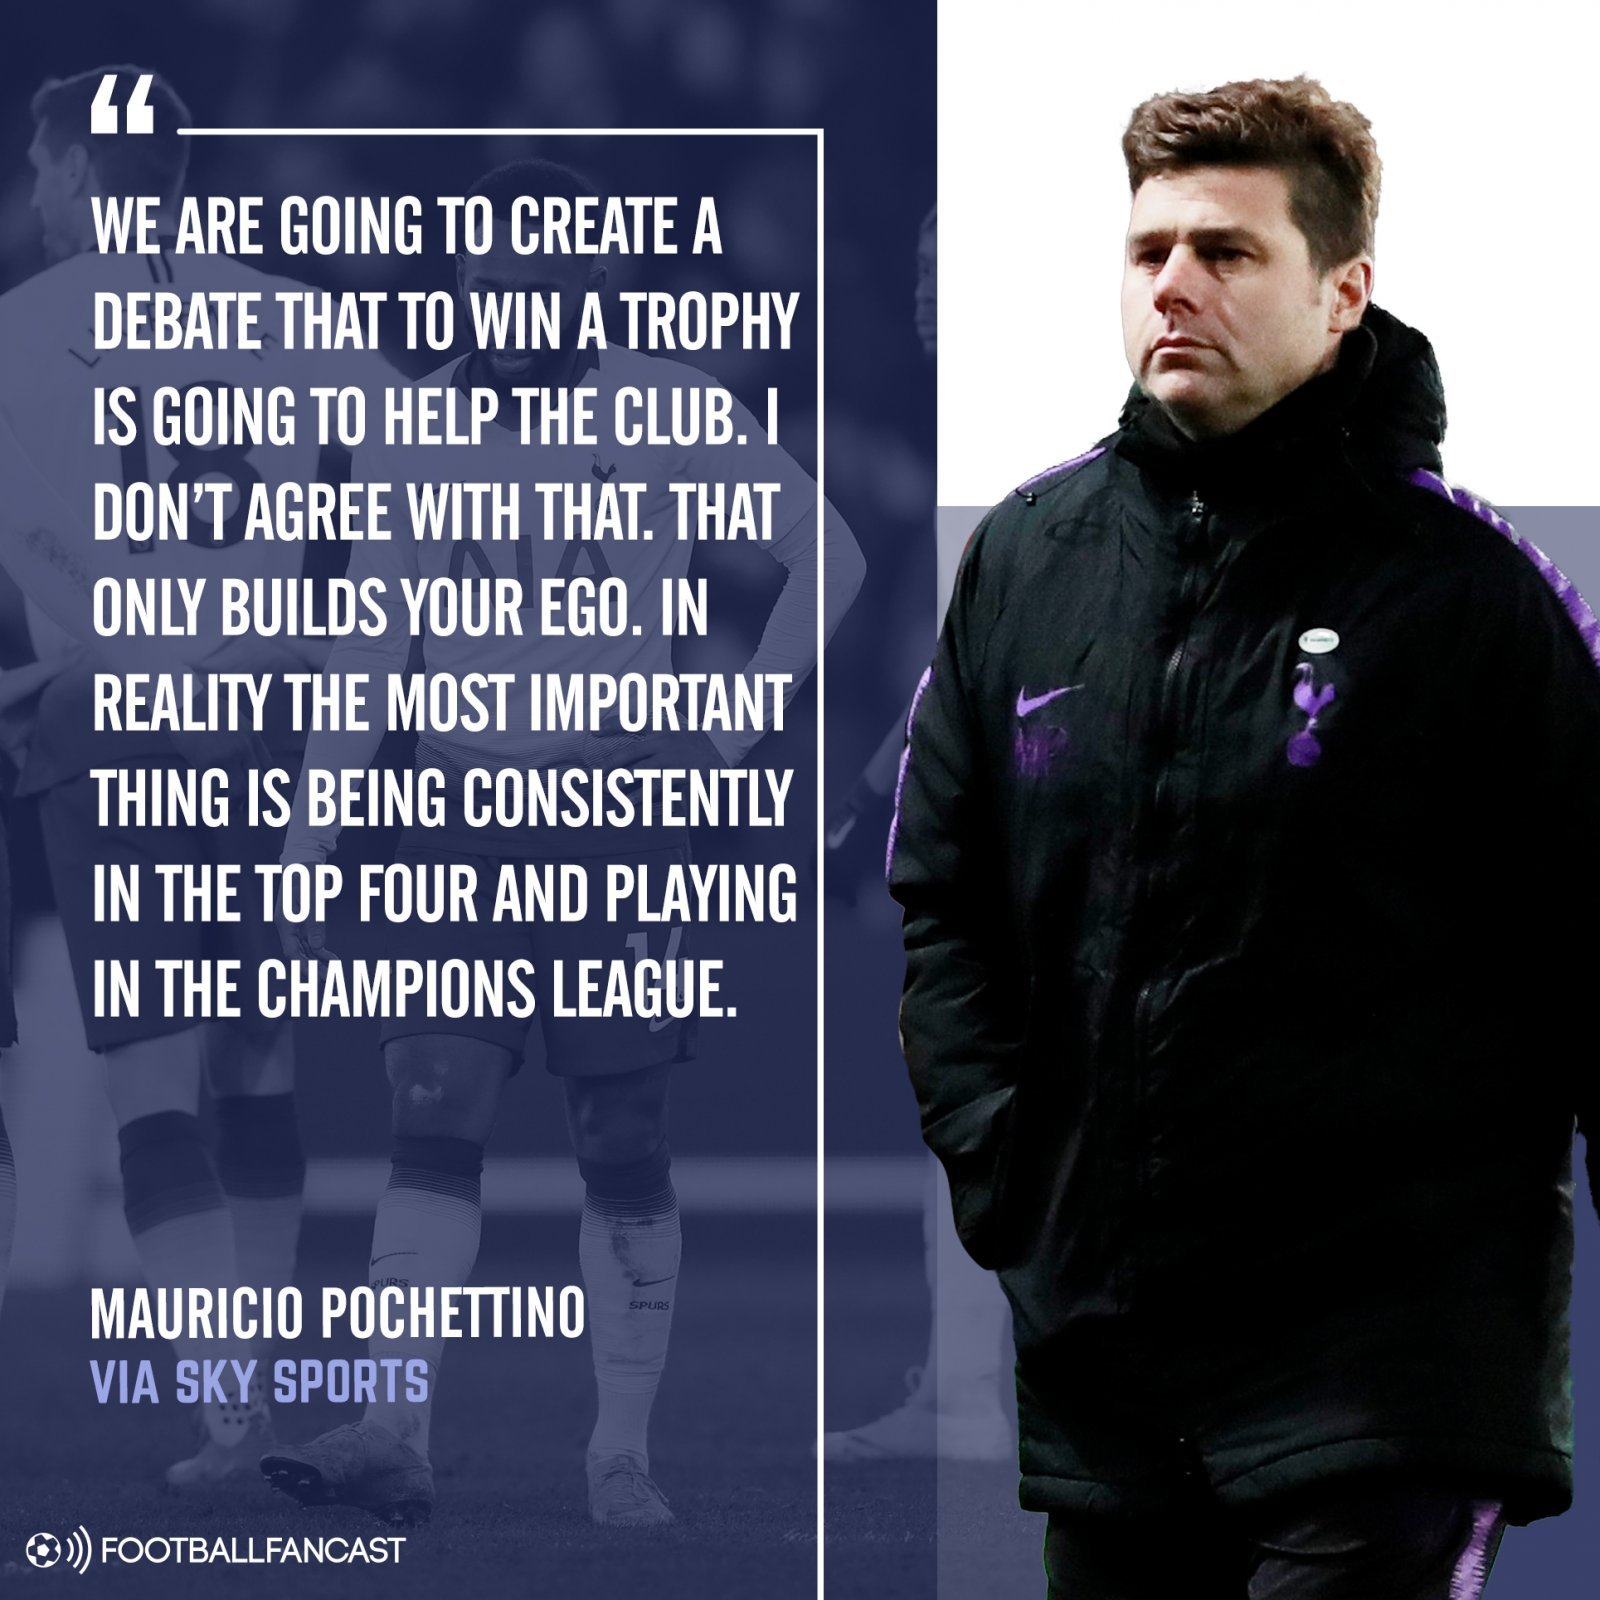 Pochettino quote 2 - Spurs favourite's controversial remarks epitomise how modern football is steadily changing